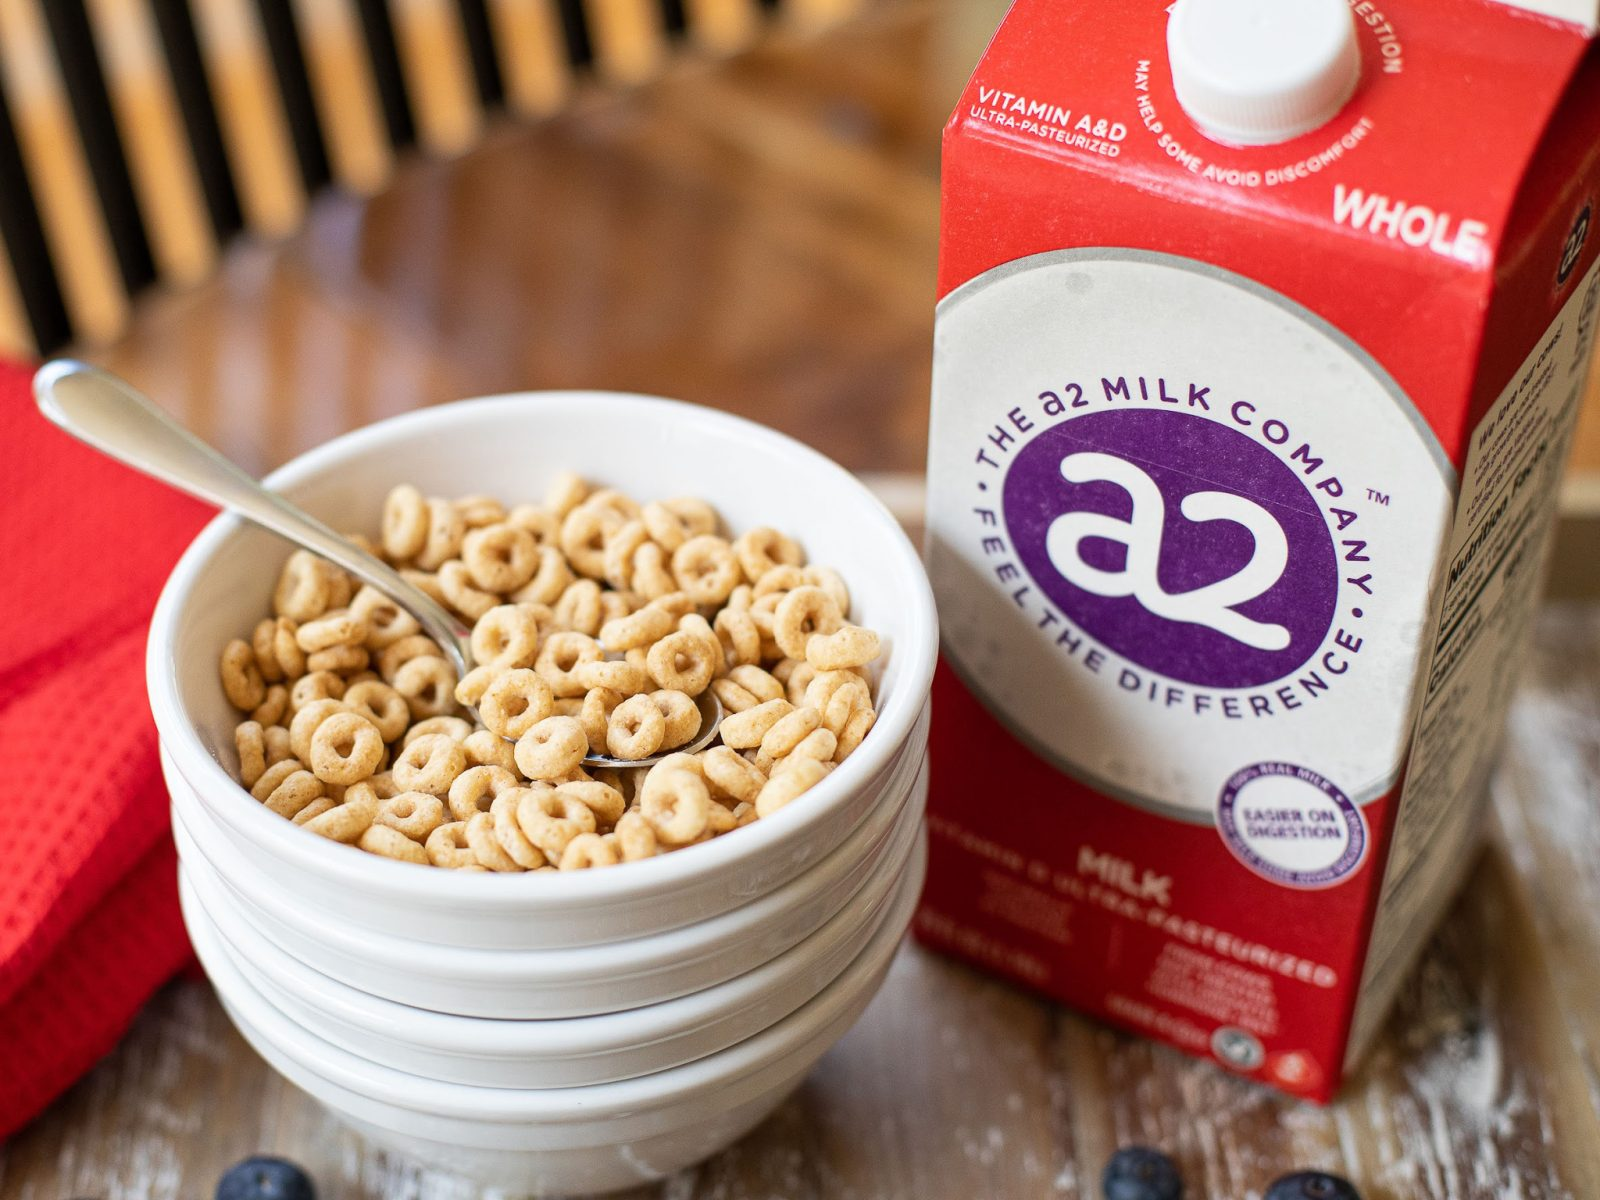 a2 Milk As Low As $1.33 This Week At Publix on I Heart Publix